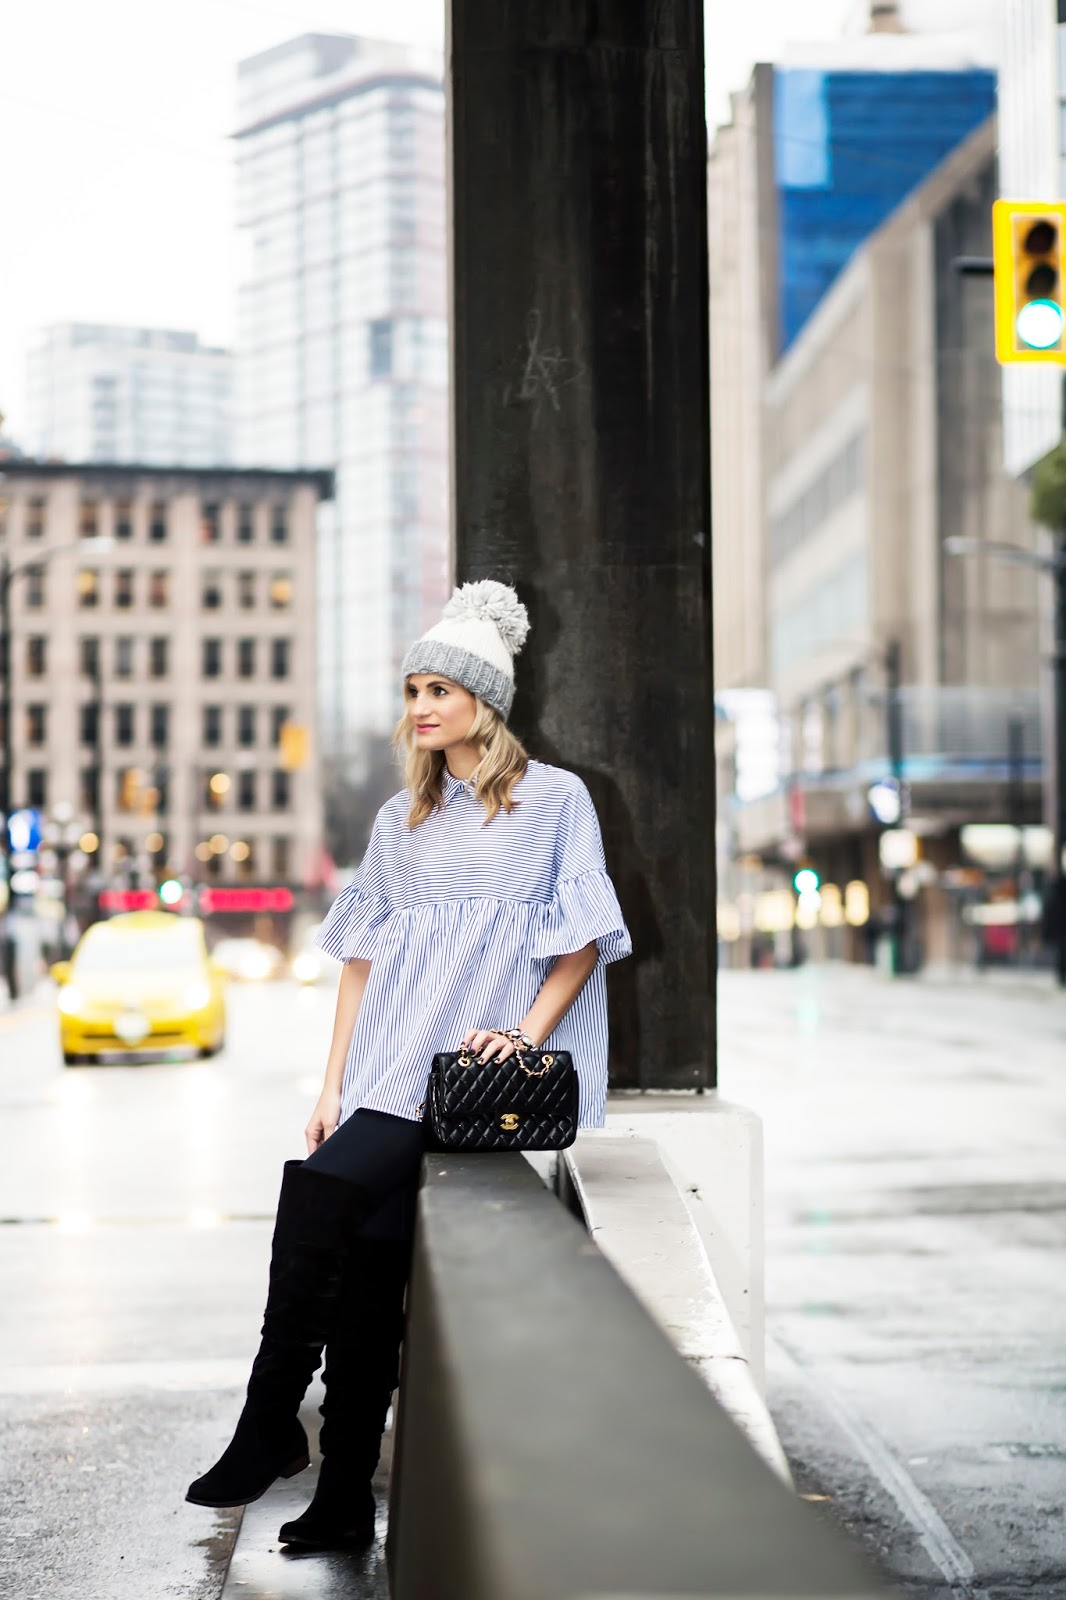 Bijuleni - Winter Uniform - Knee high Suede boots, SheIn ruffle top, skinny jeans, pom pom beanie